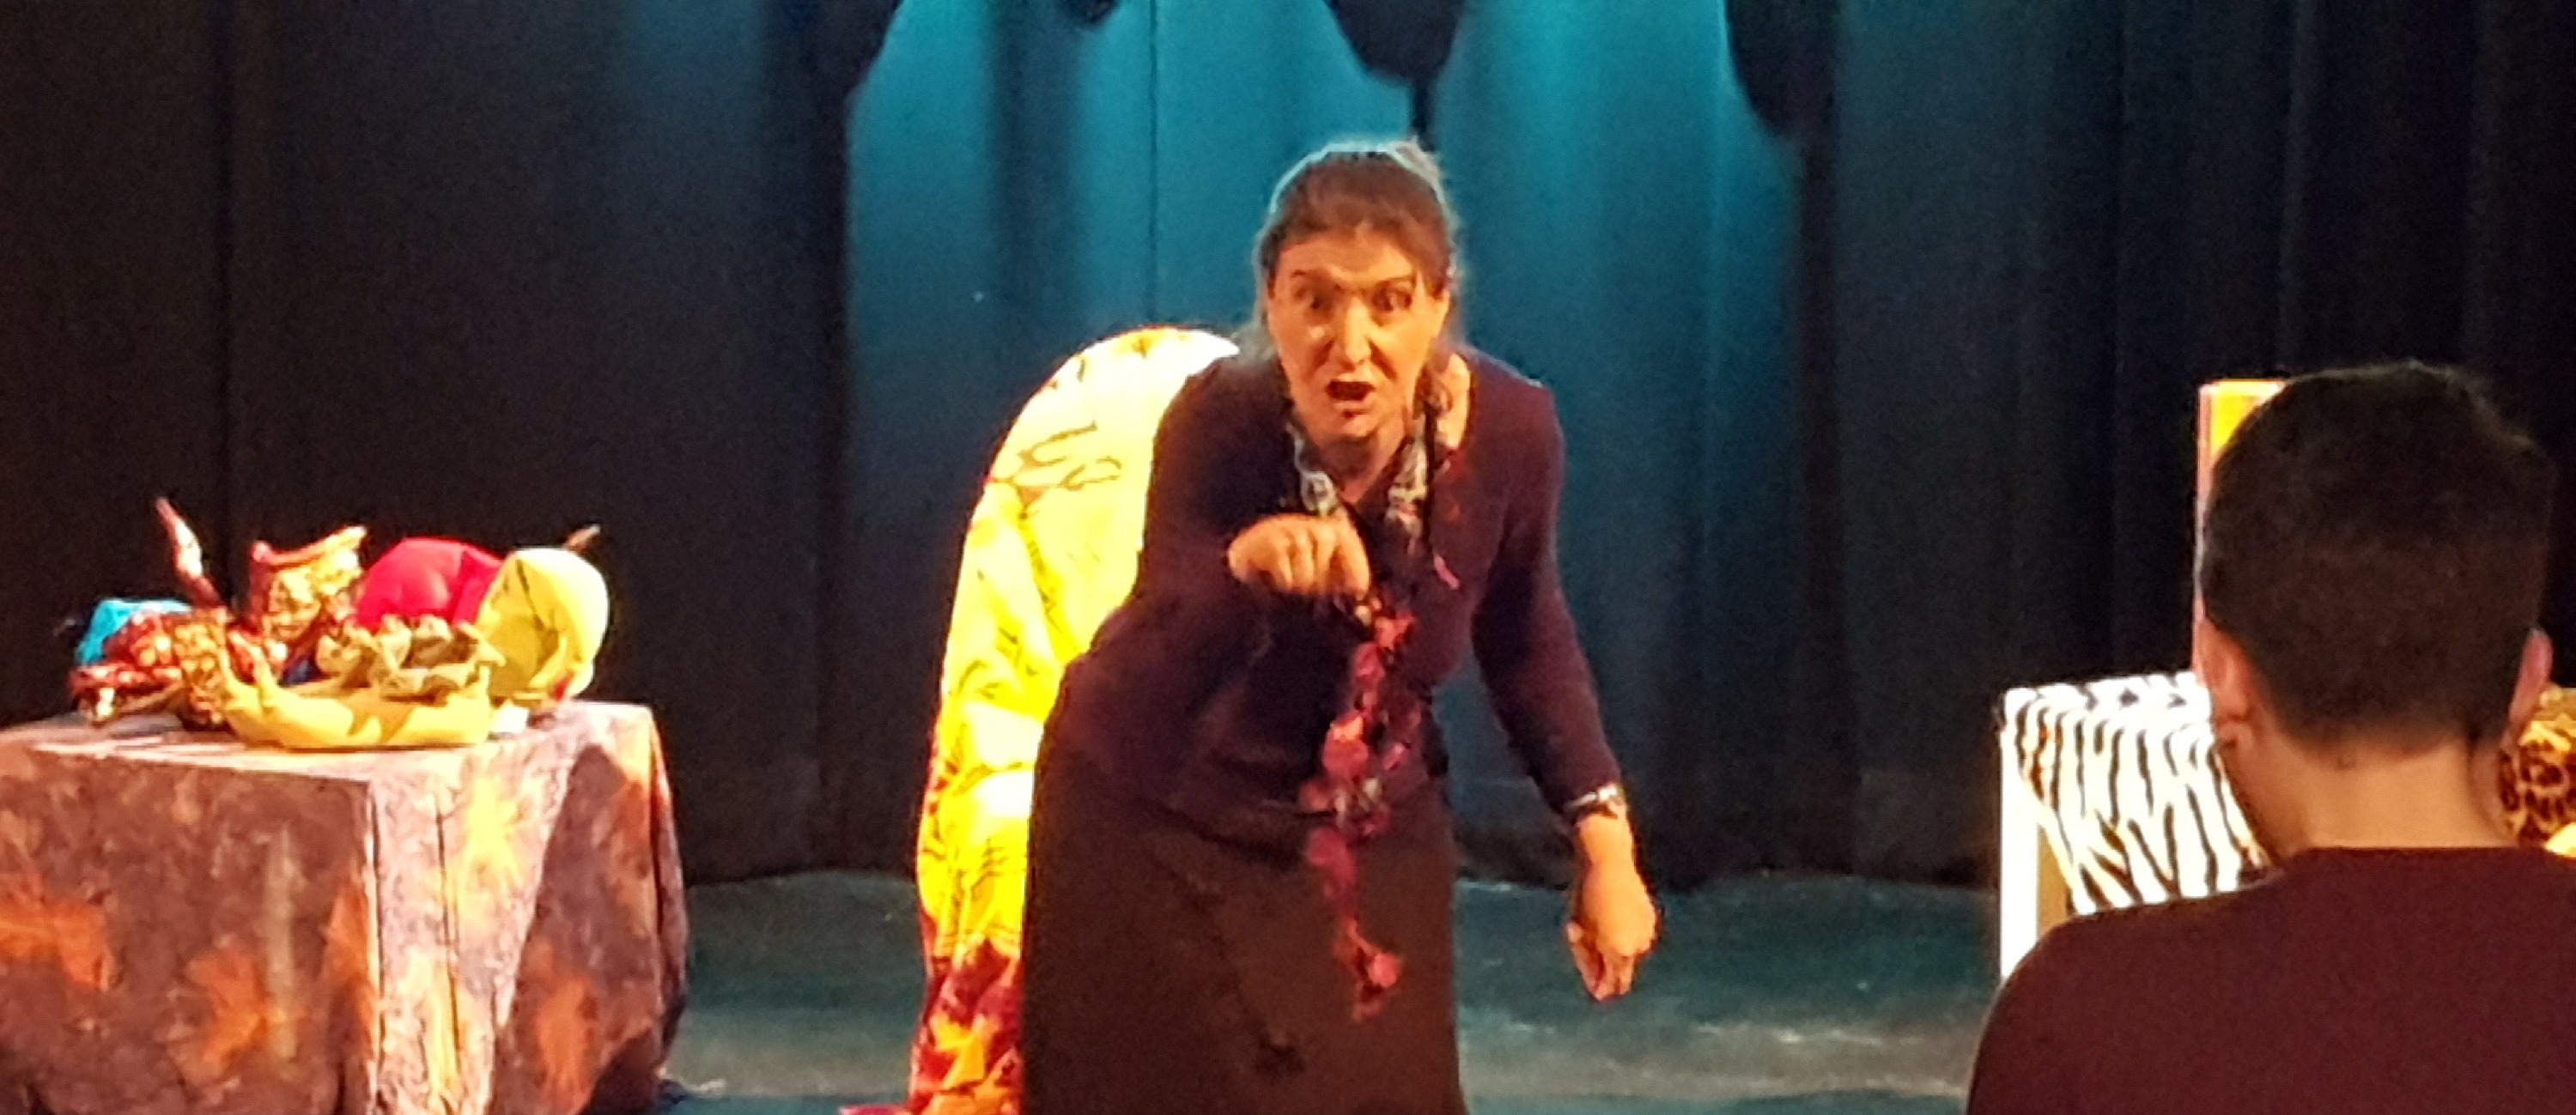 Festival of Stories, Palace Theatre 2018